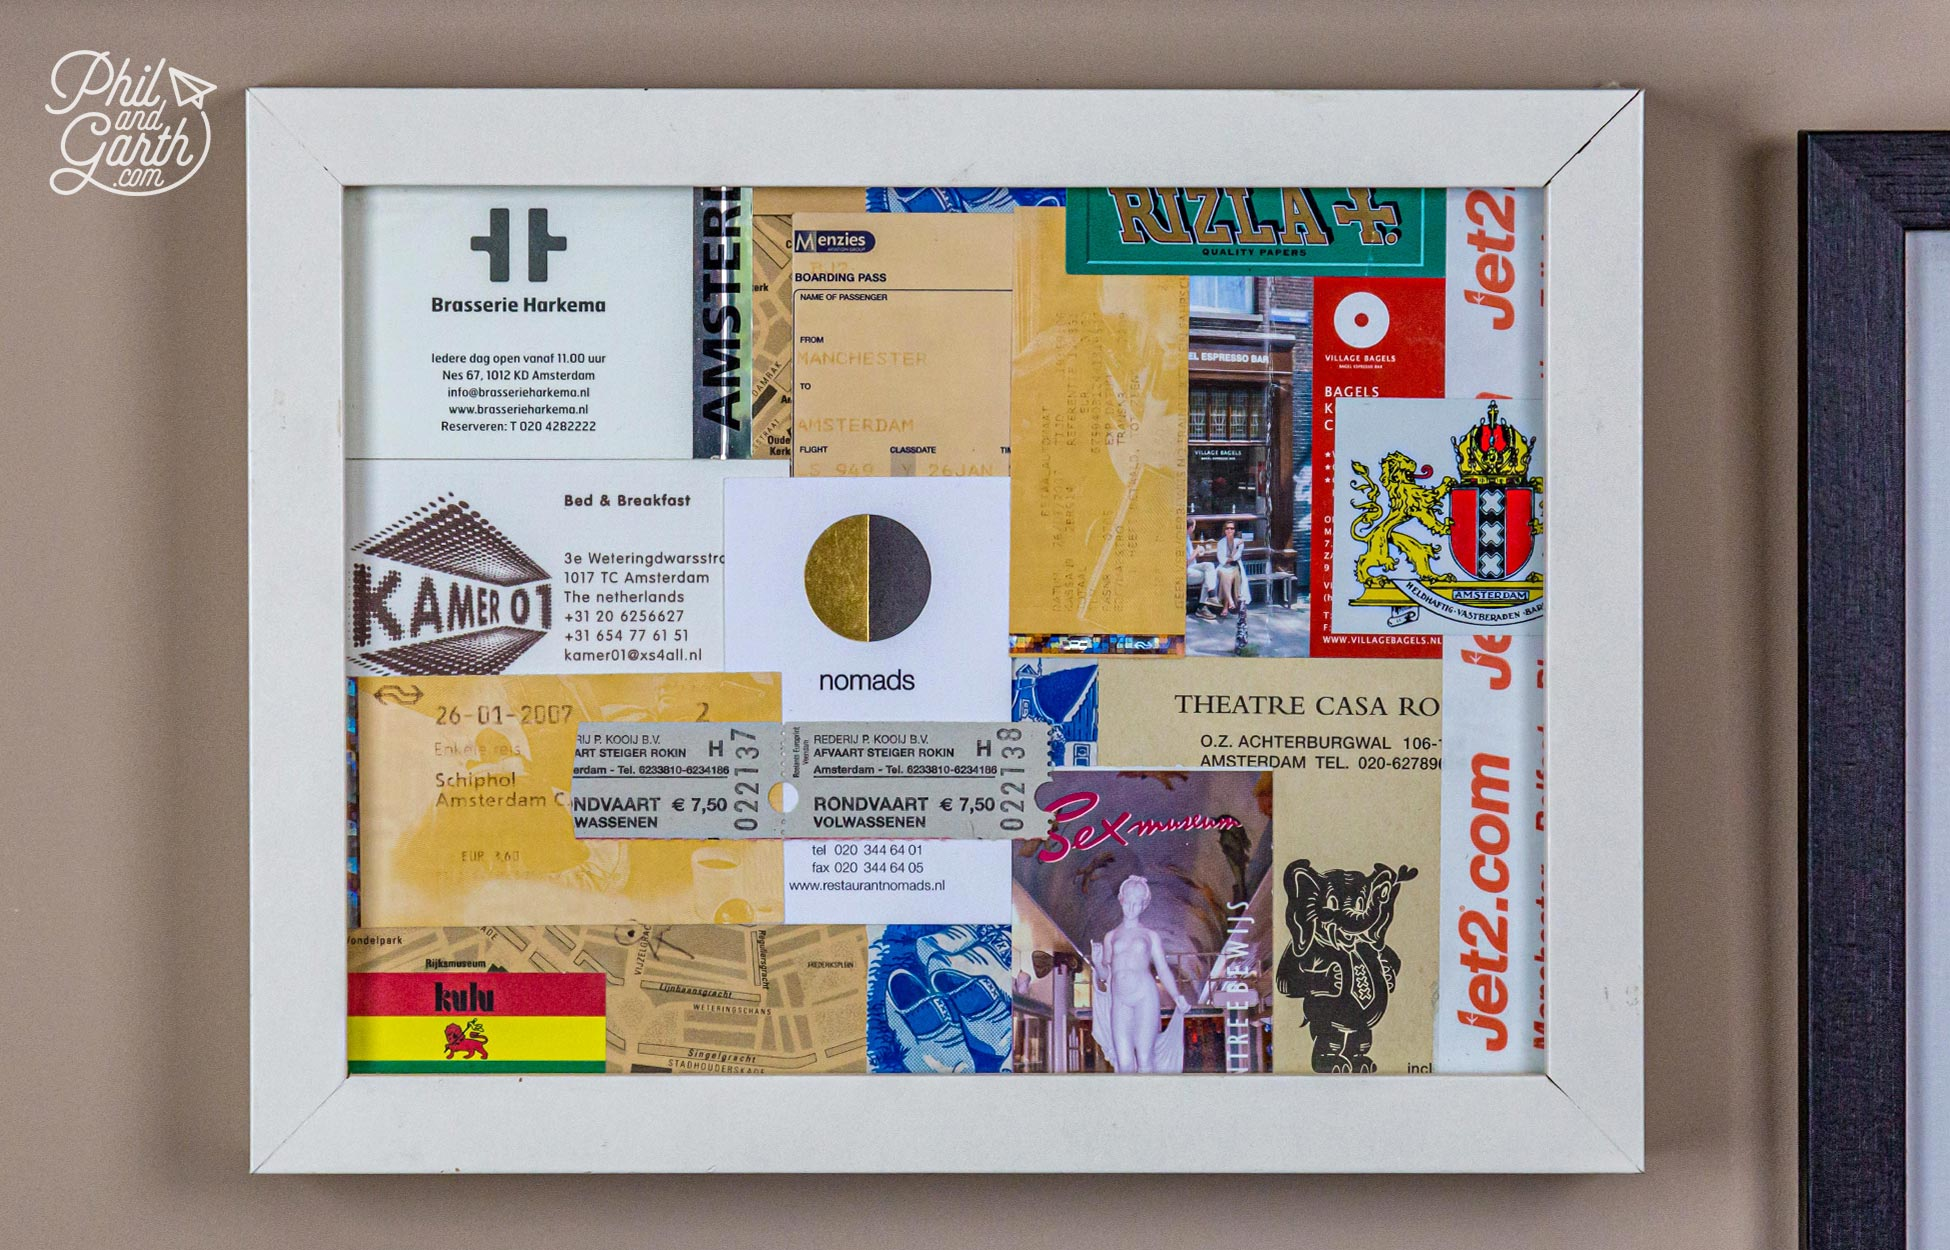 This was the first memory box we created with bits and bobs from Amsterdam